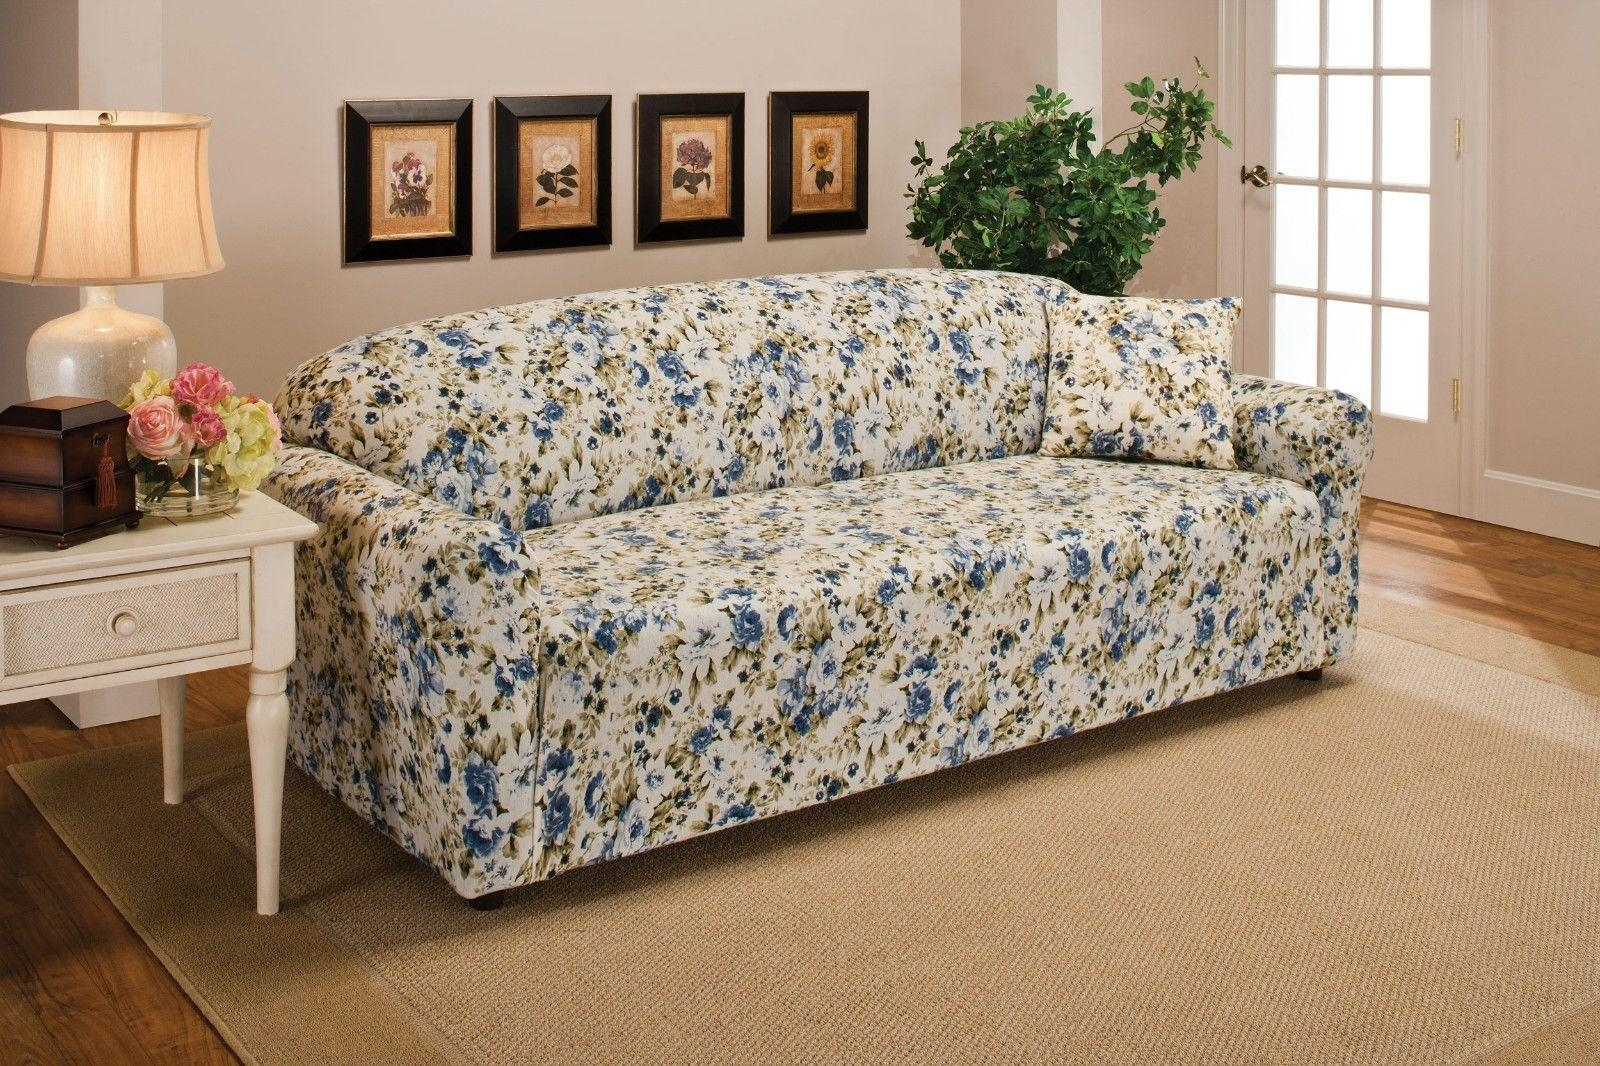 20 photos floral sofas sofa ideas for 80s floral couch